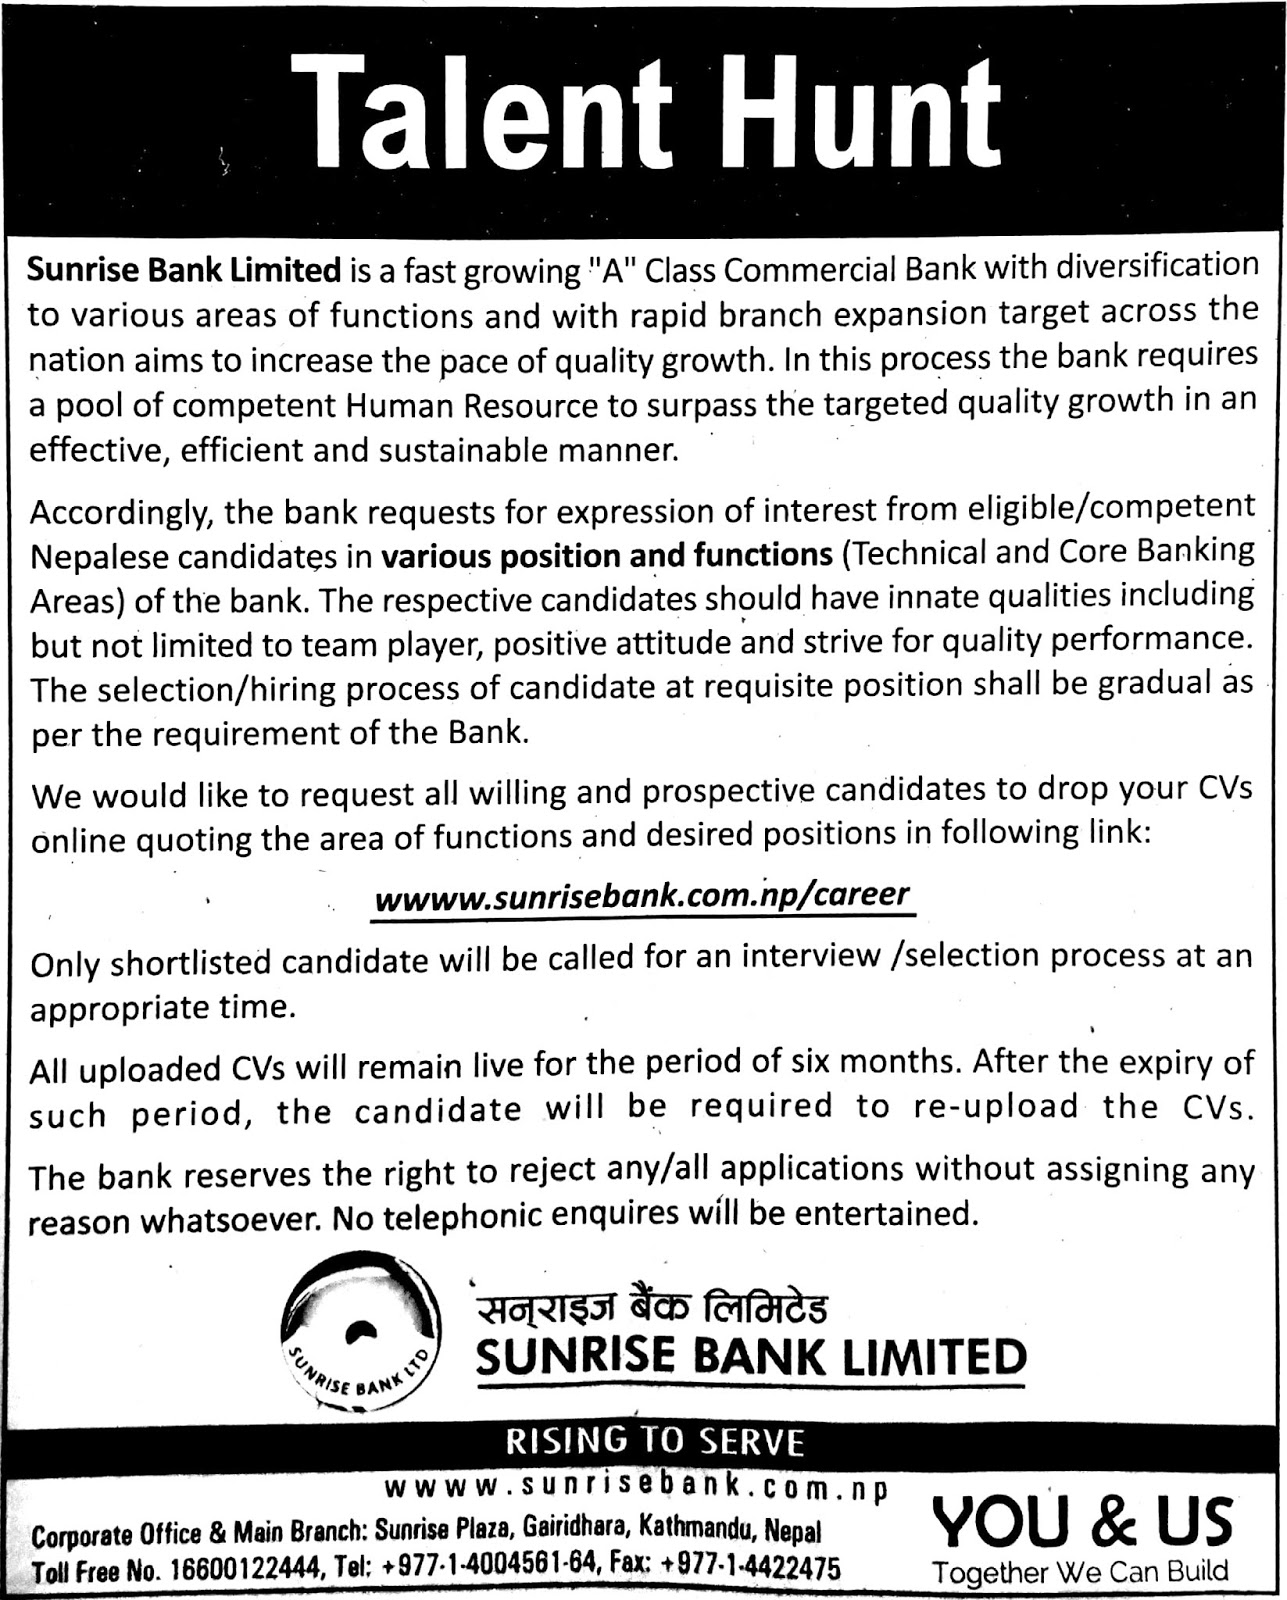 Banking Career Opportunity at Sunrise Bank Limited.